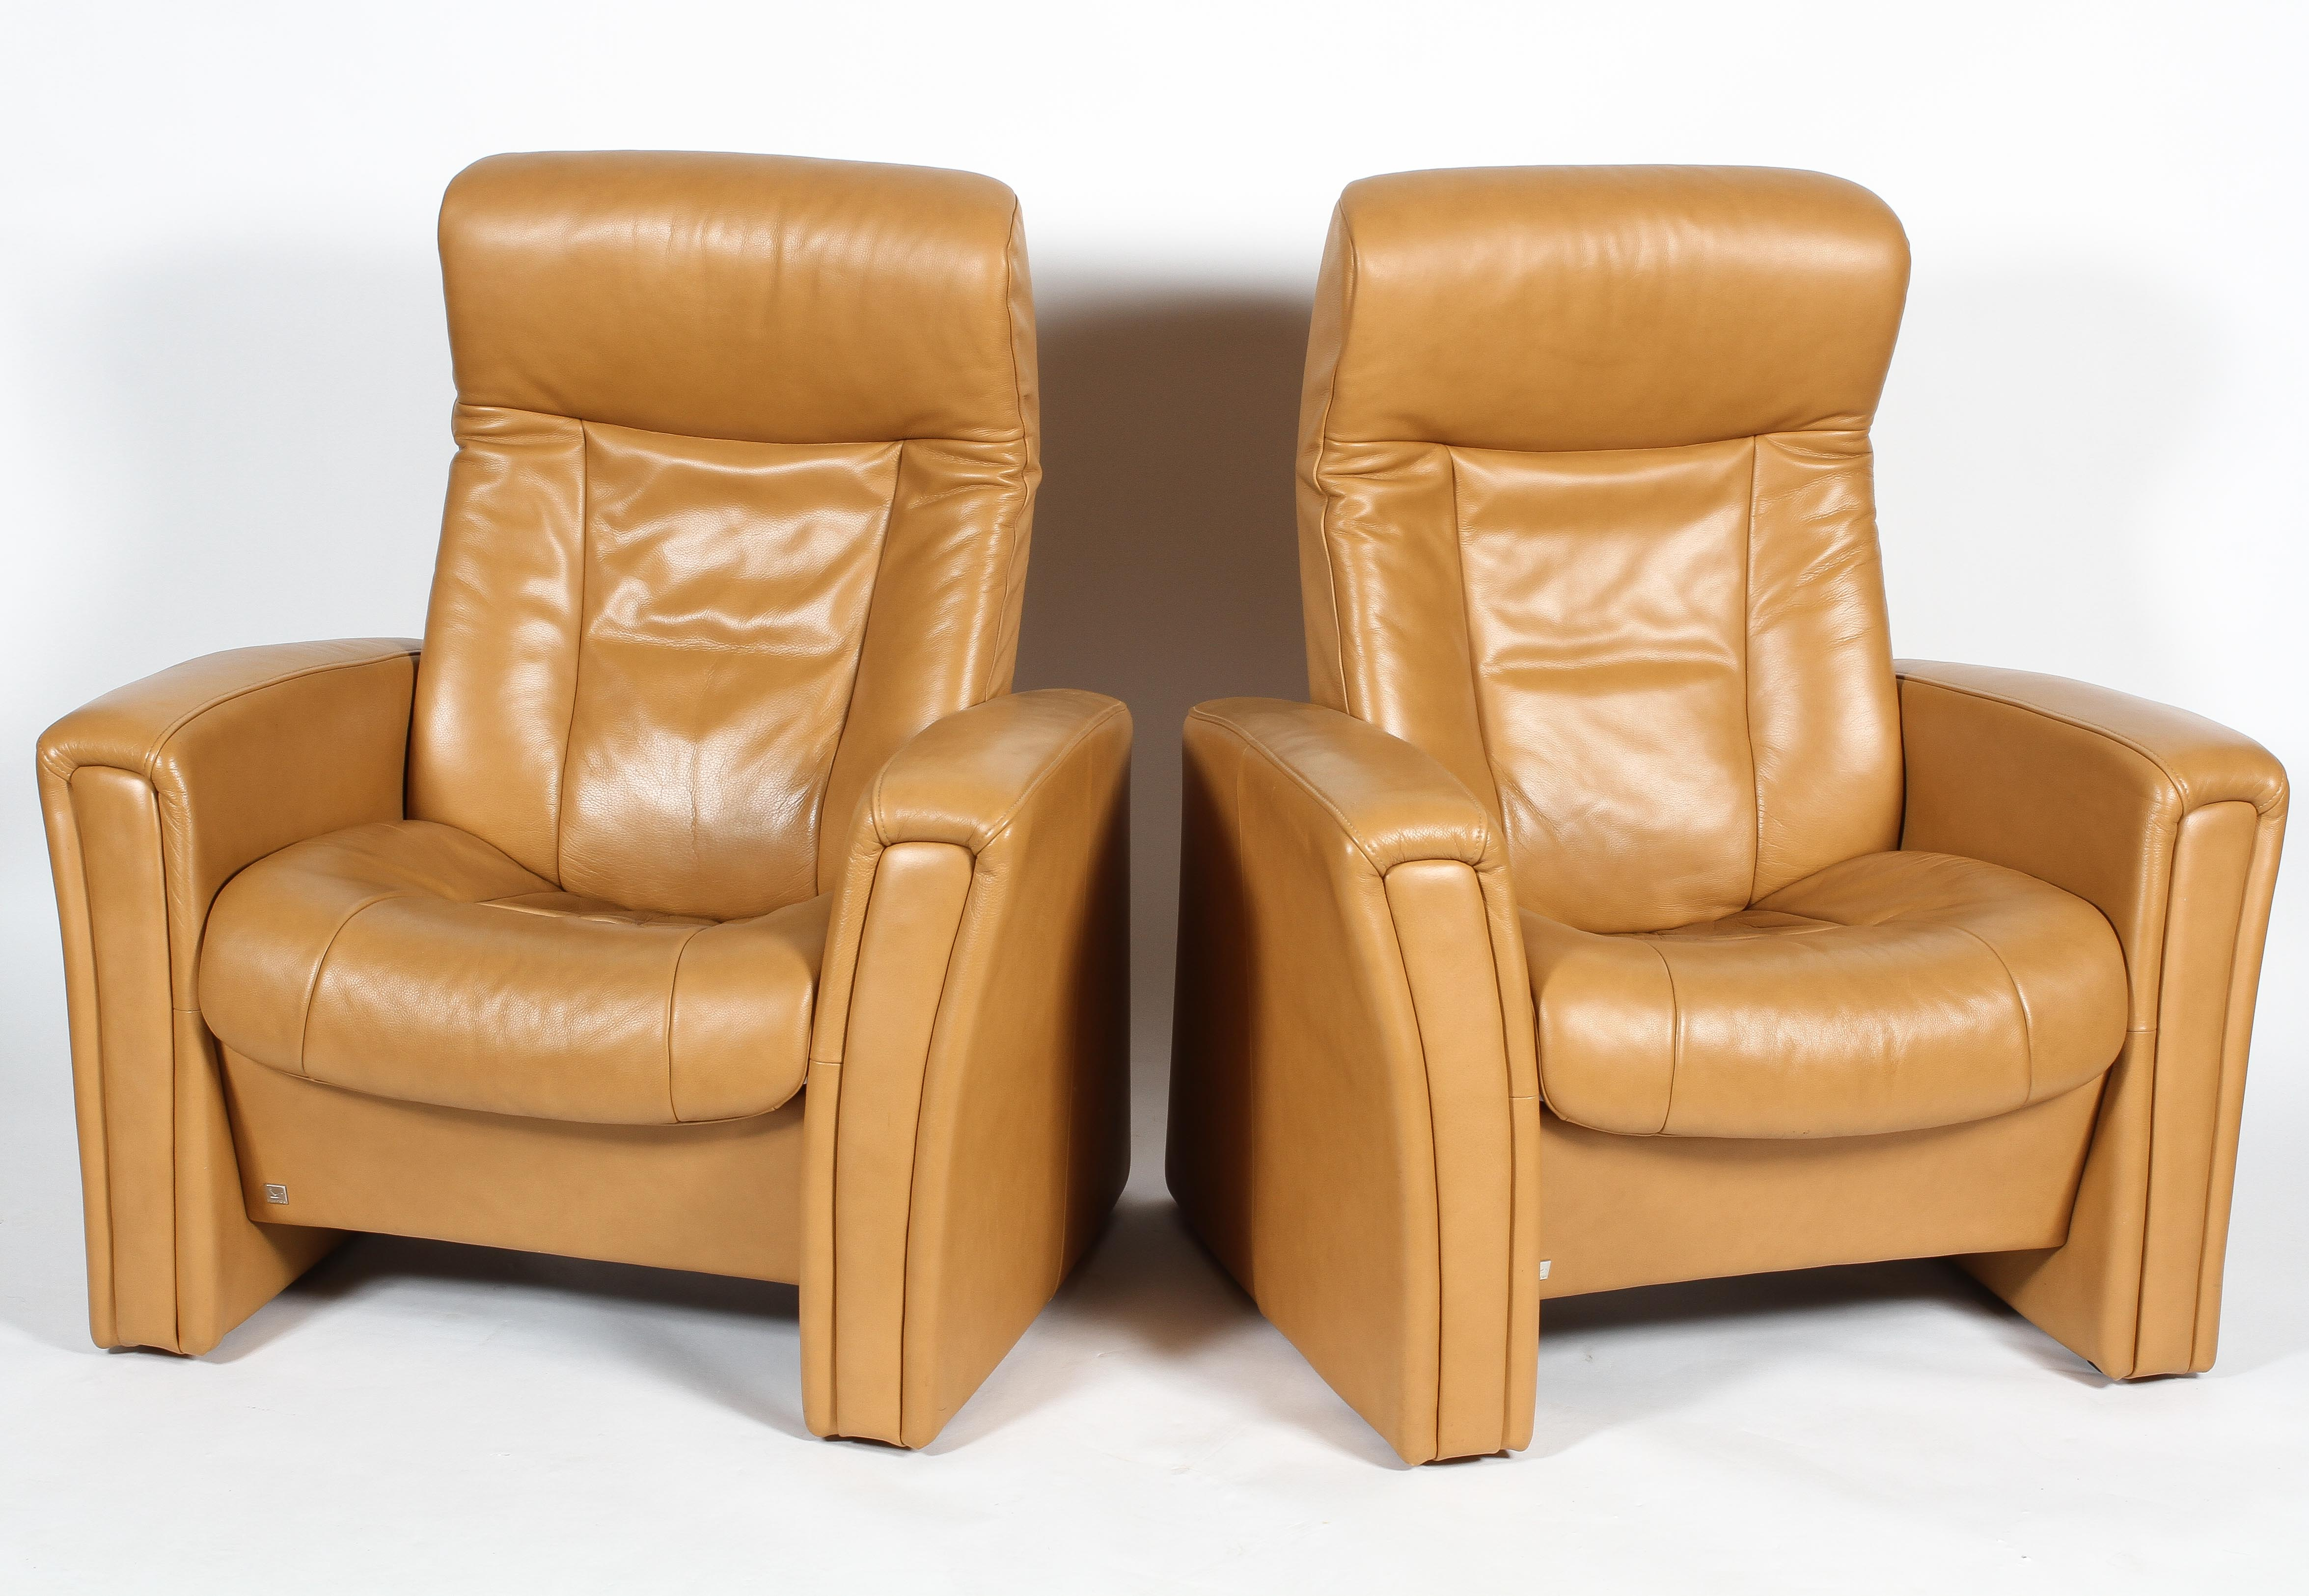 Two Fjords (Norwegian) reclining chairs, upholstered in pale tan leather style fabric,